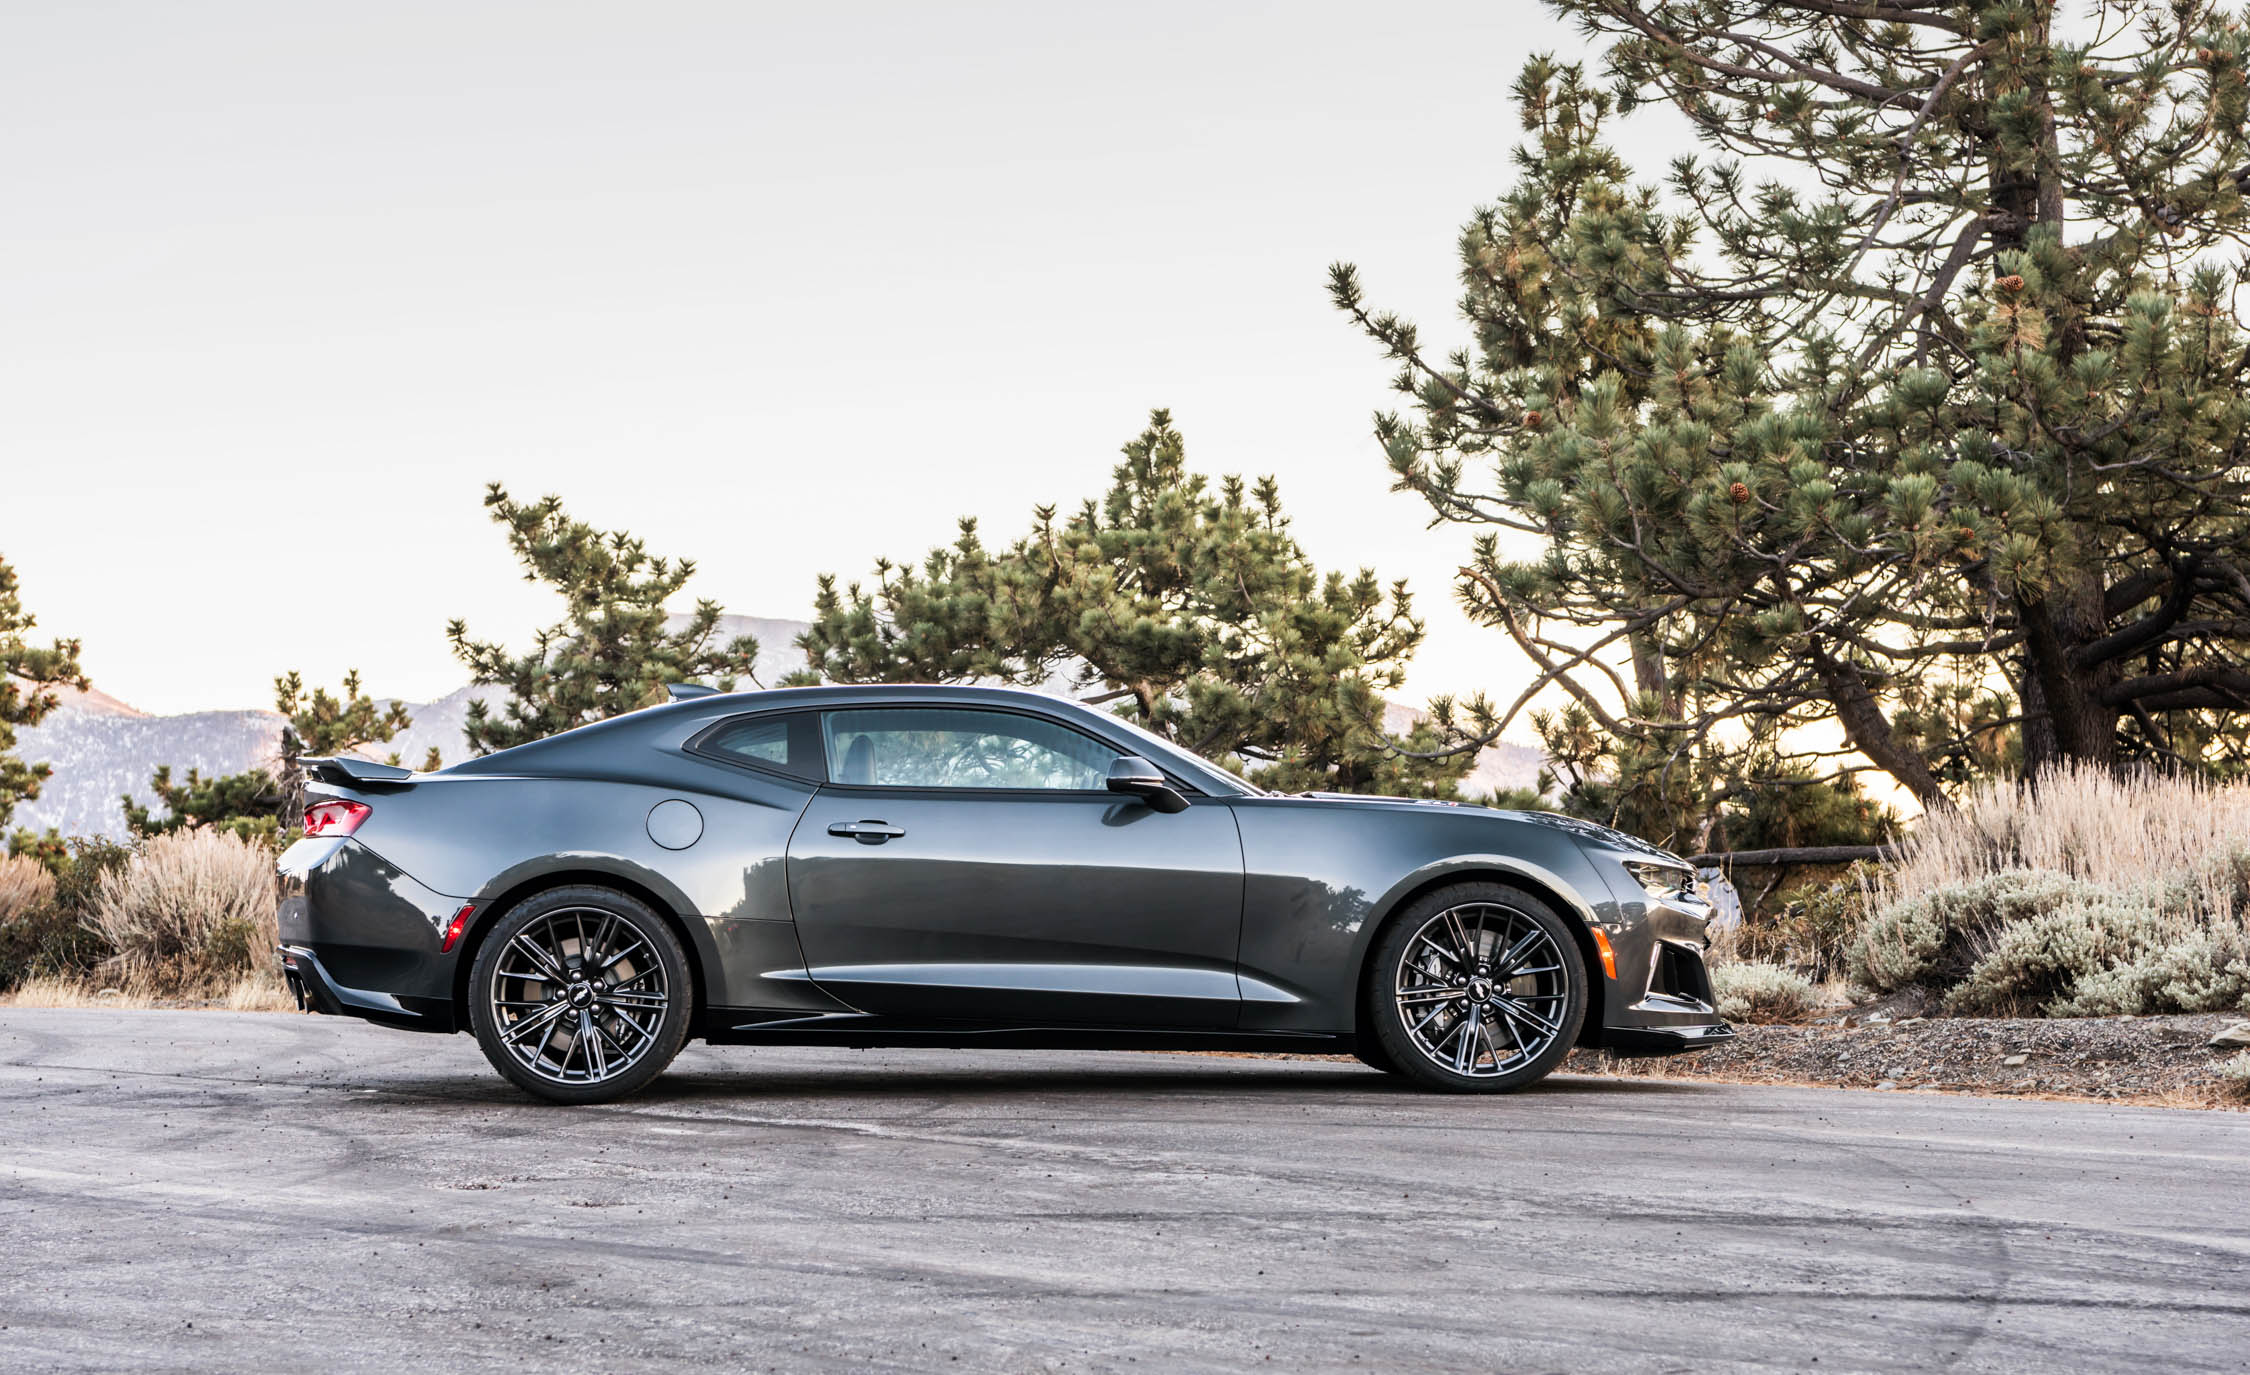 2017 Chevrolet Camaro ZL1 Grey Exterior Side (Photo 12 of 62)